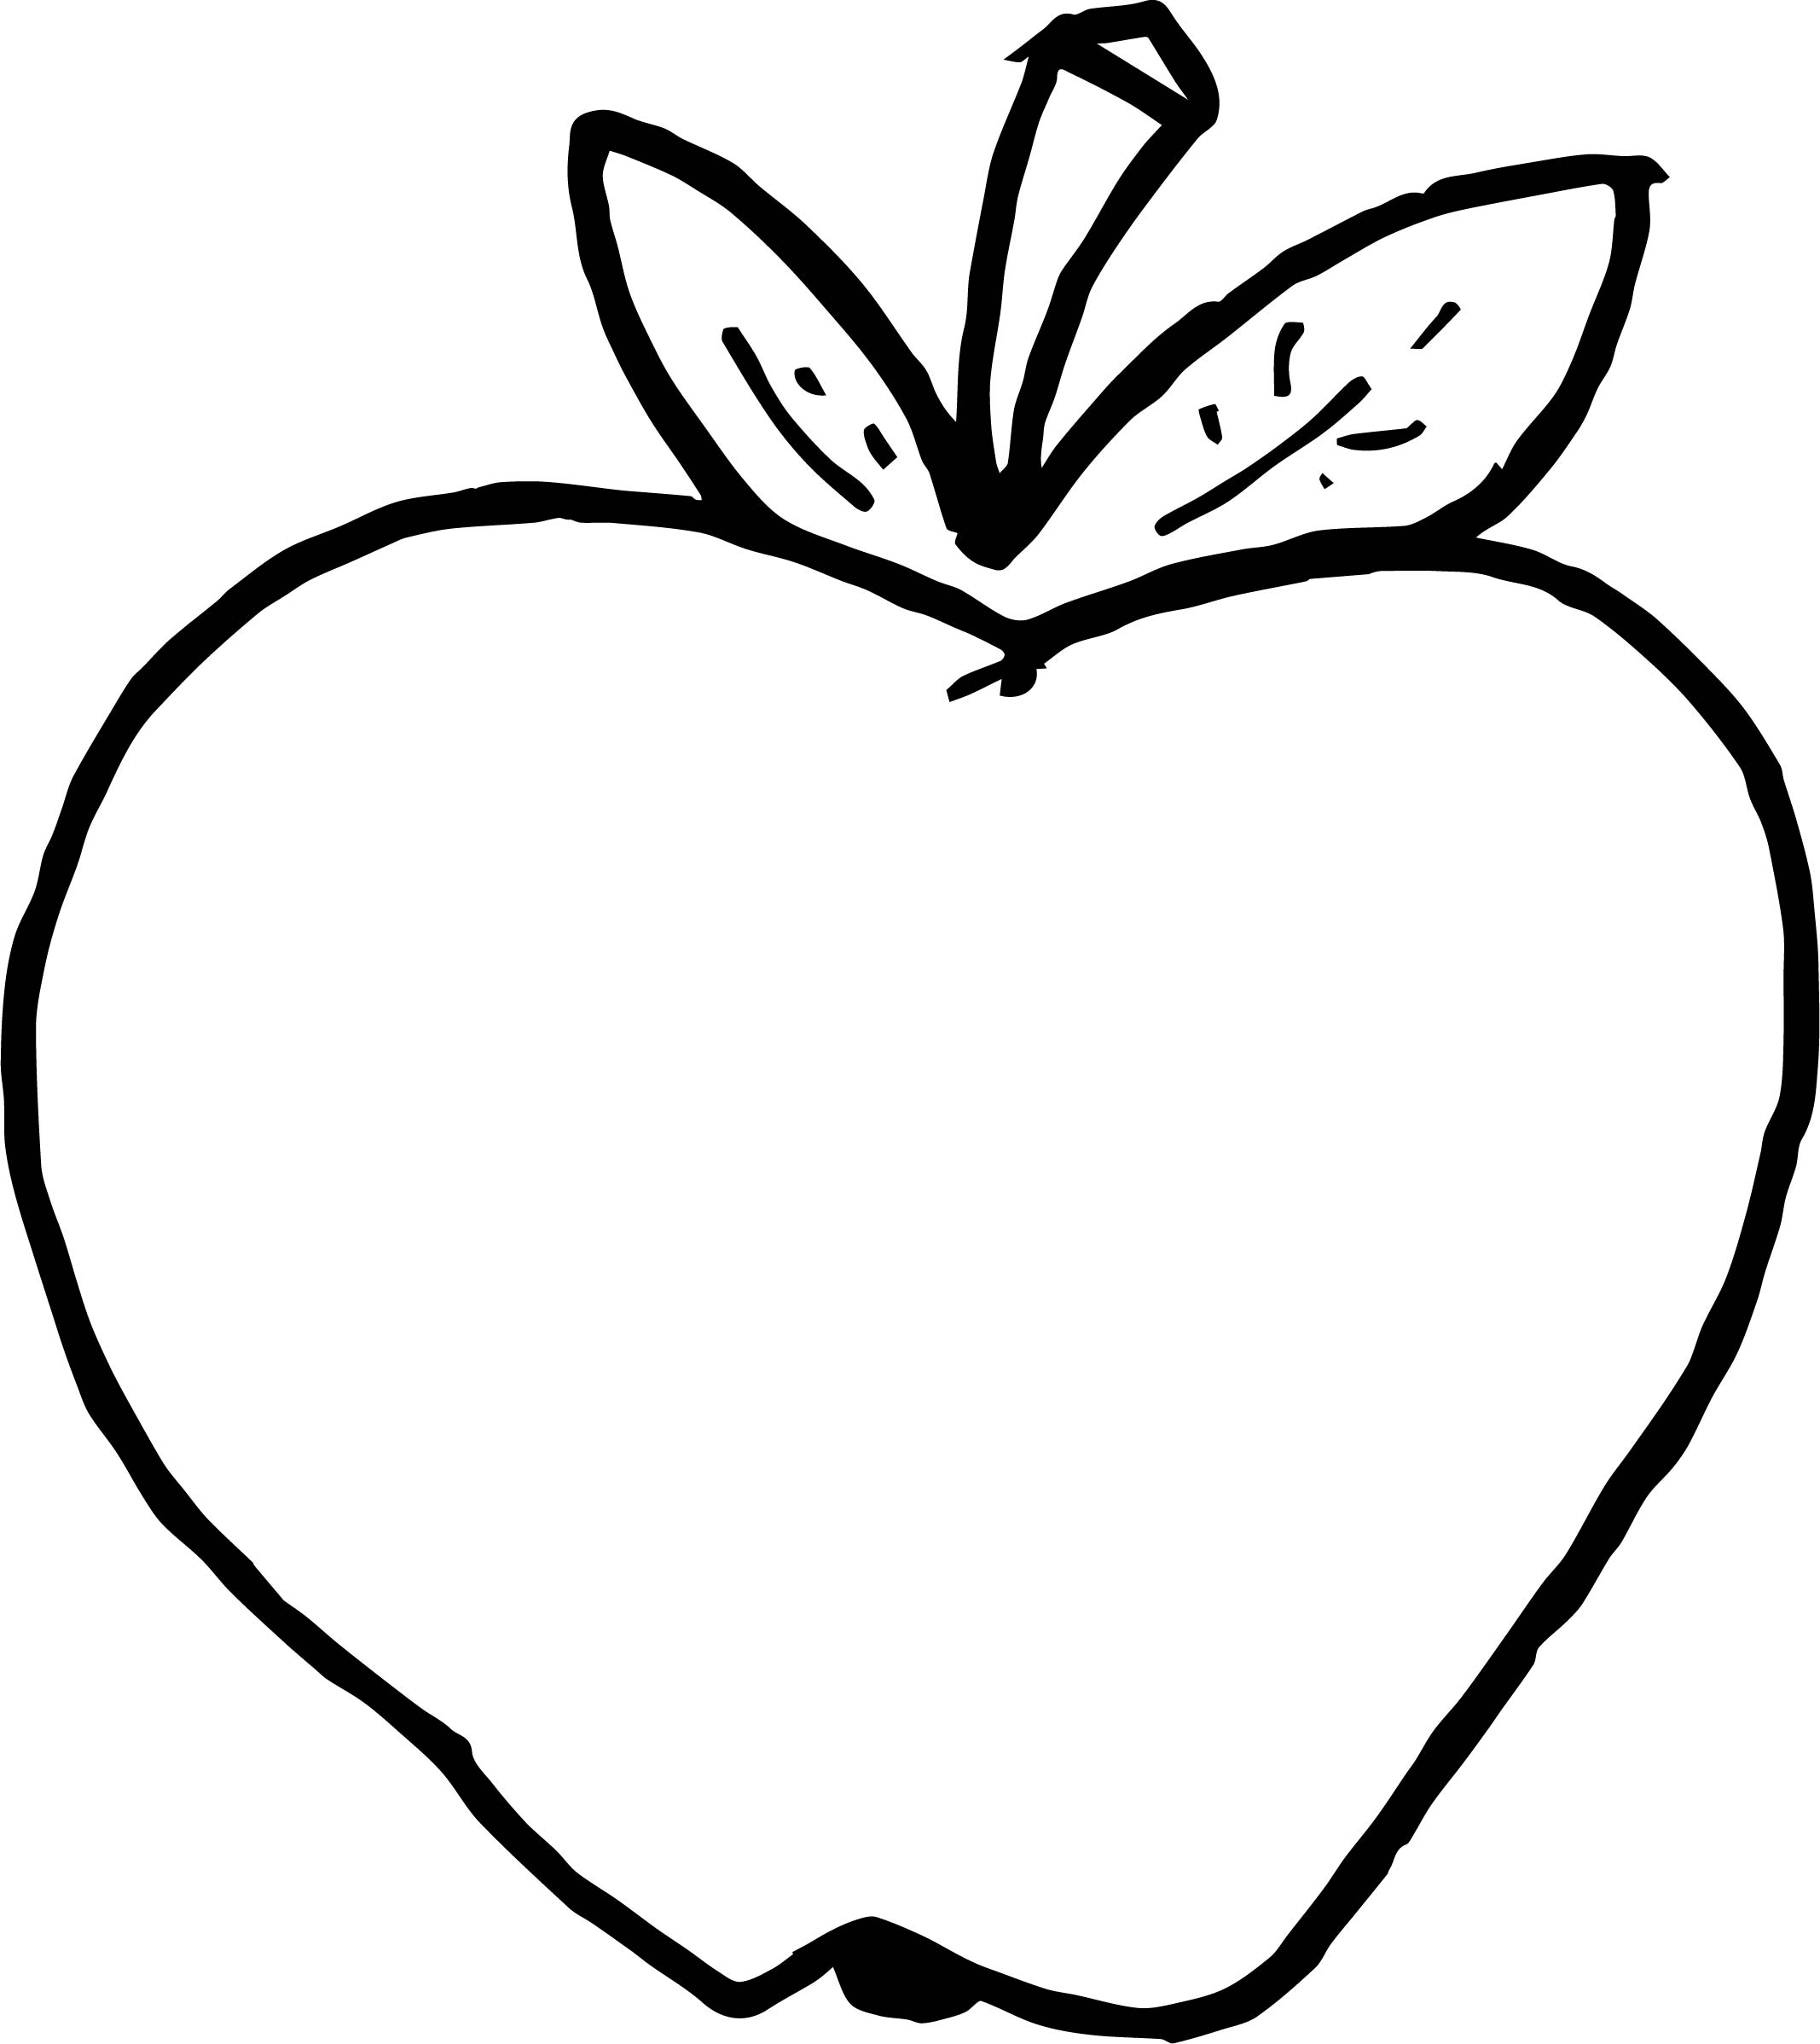 Apple Computer Coloring Pages : Apple image free food coloring page wecoloringpage